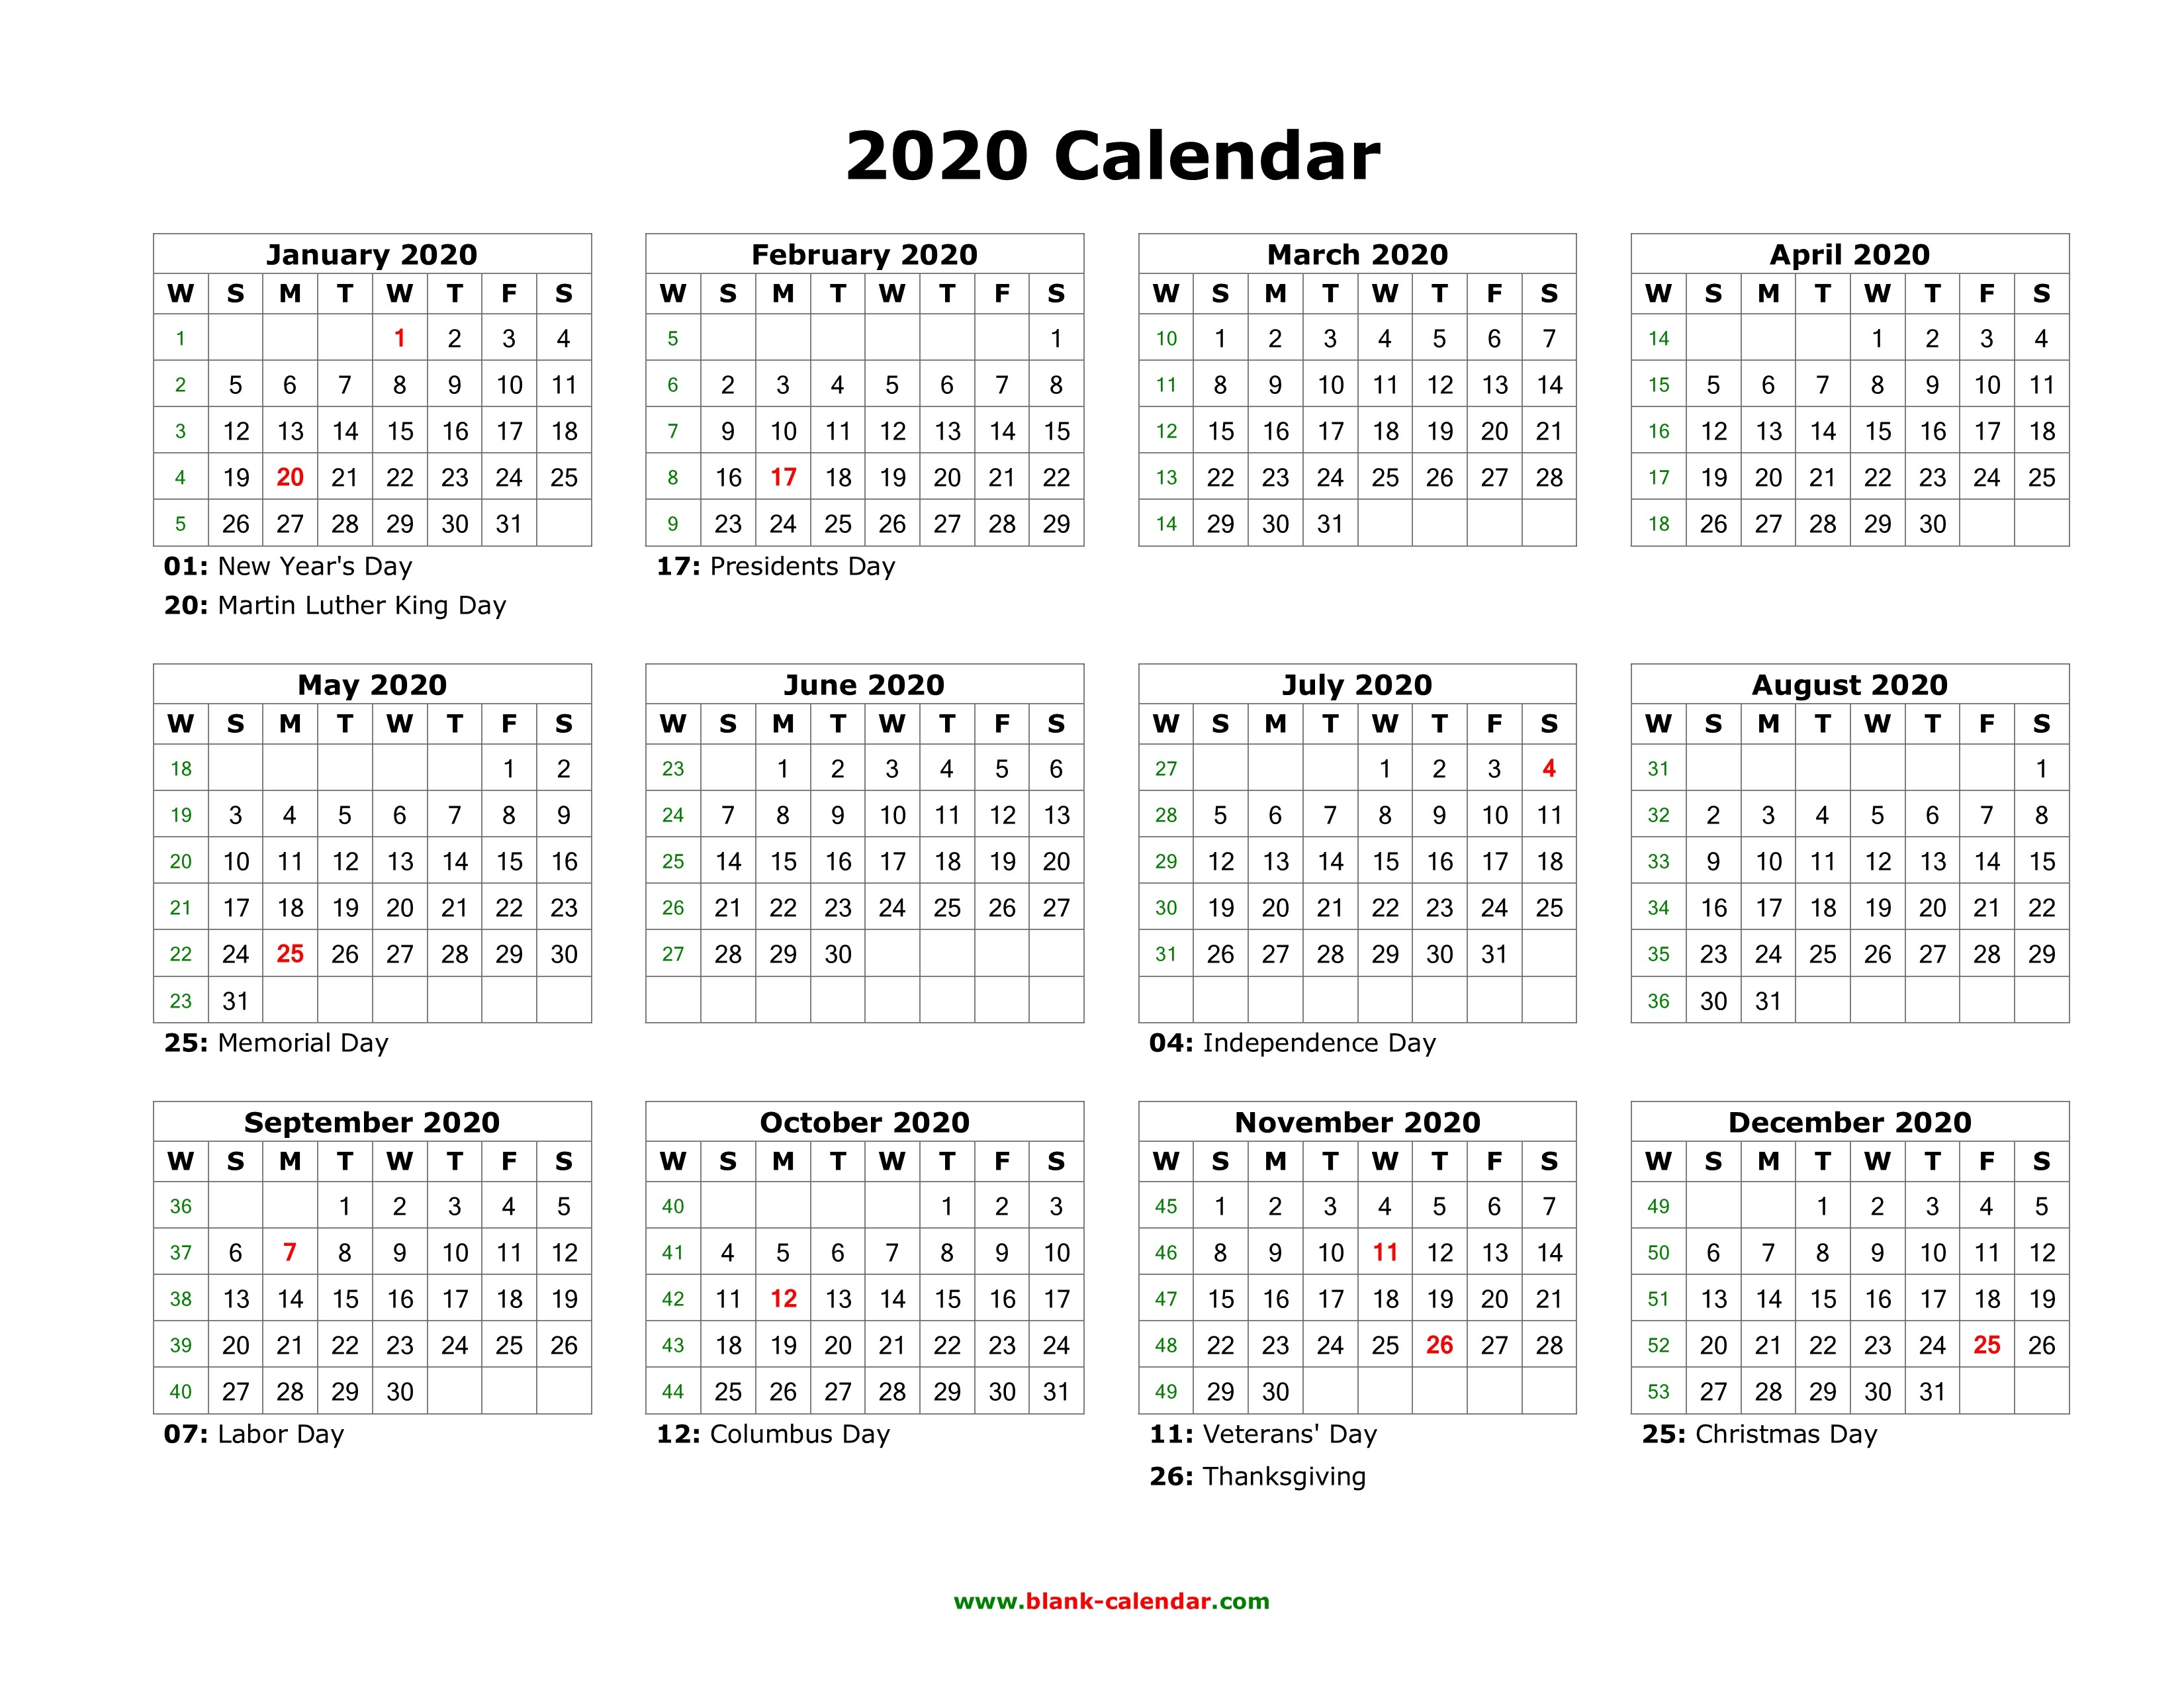 microsoft word printable calendar 2020 download blank calendar 2020 with us holidays 12 months of microsoft word printable calendar 2020